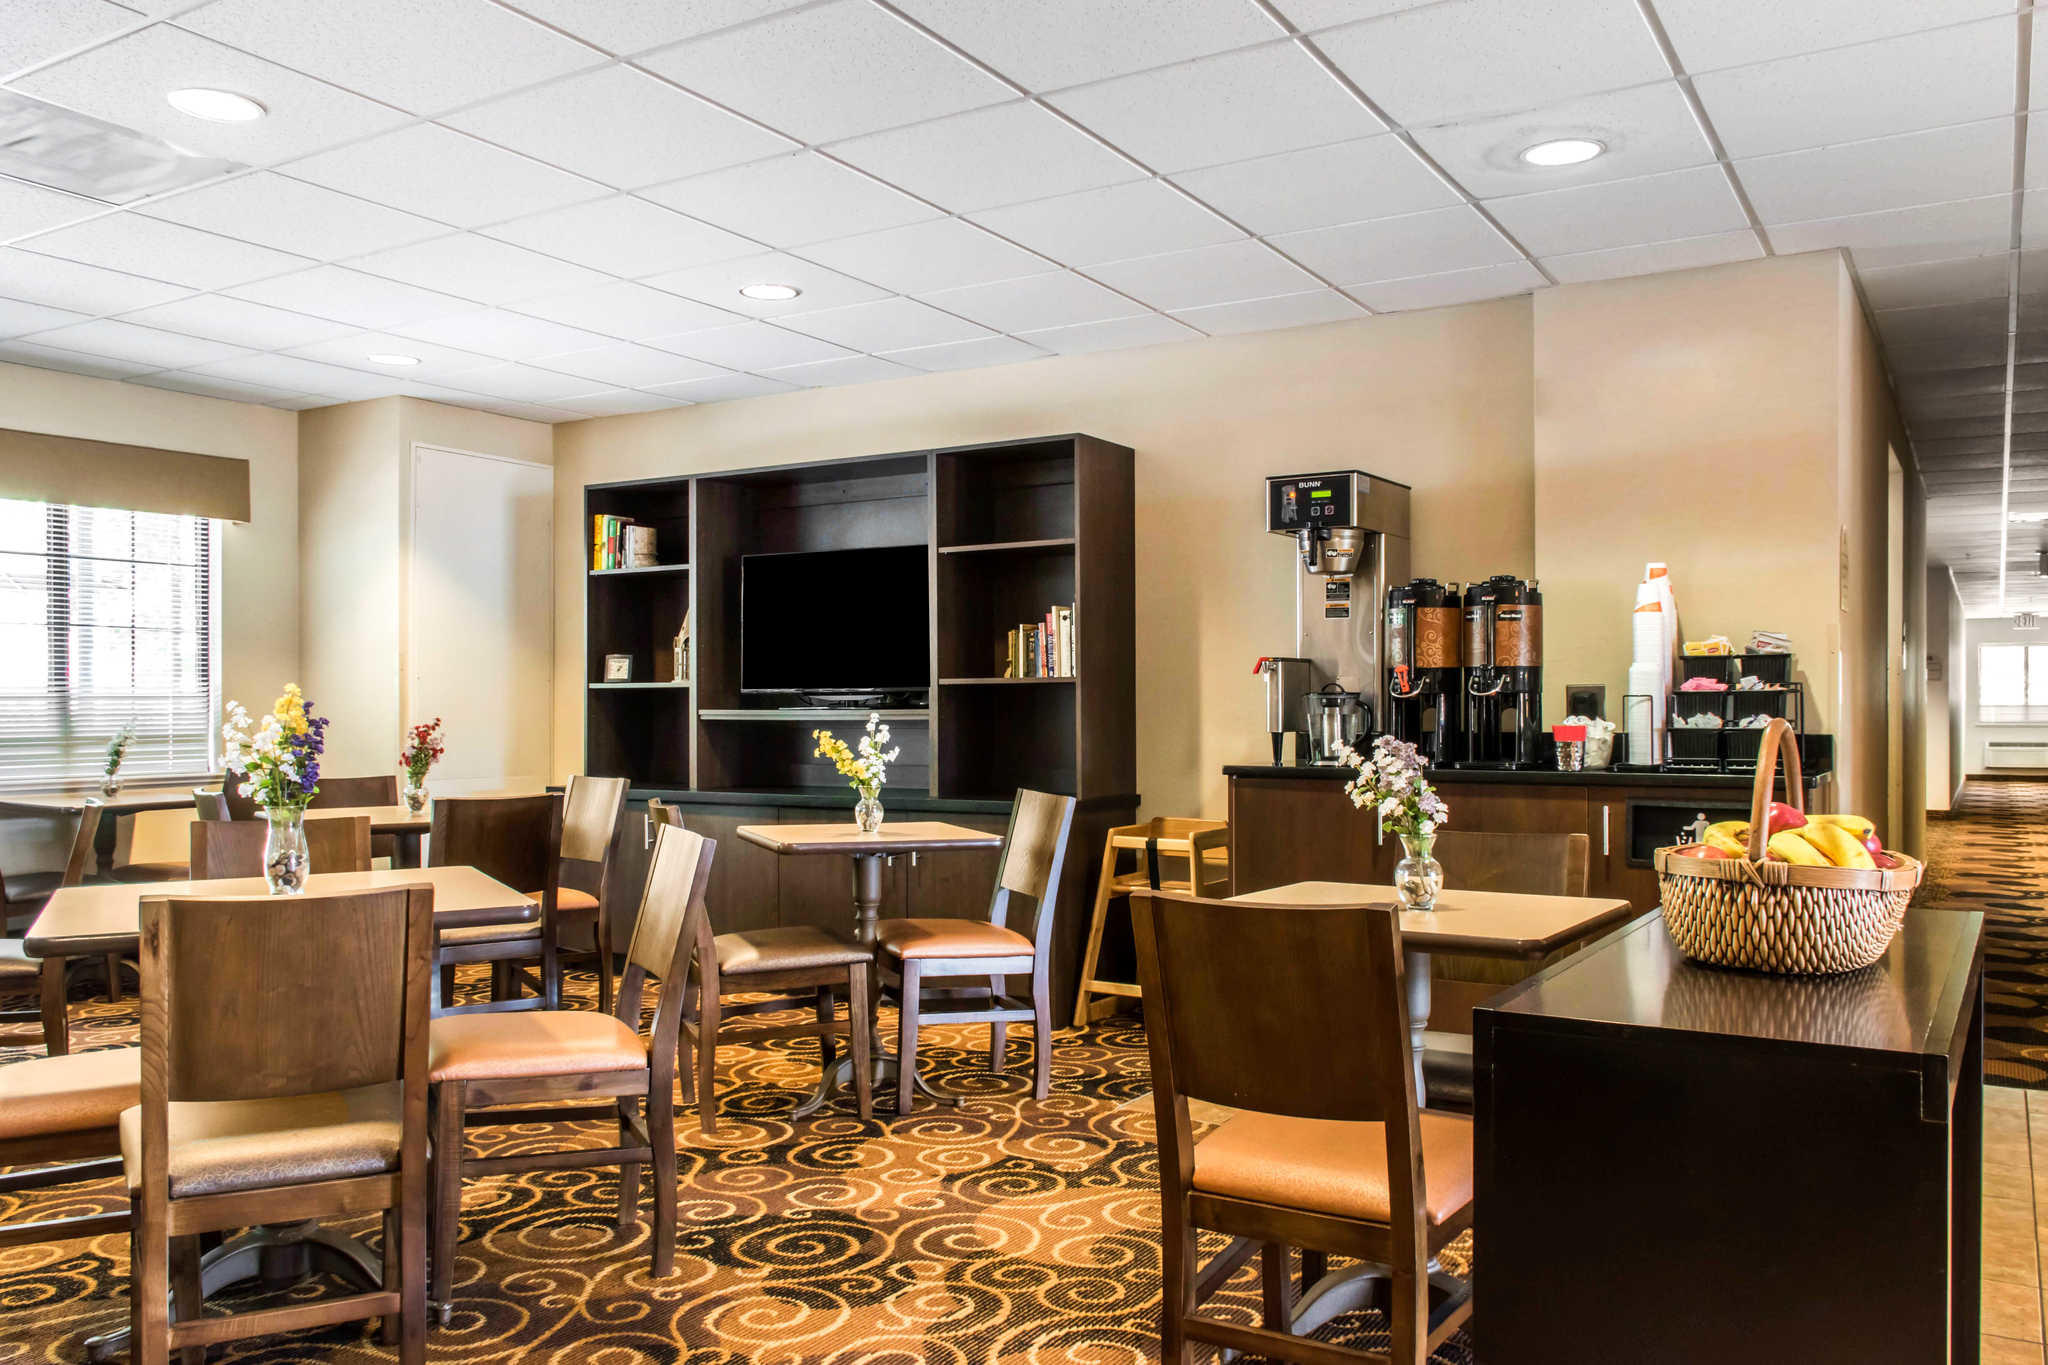 MainStay Suites of Lancaster County